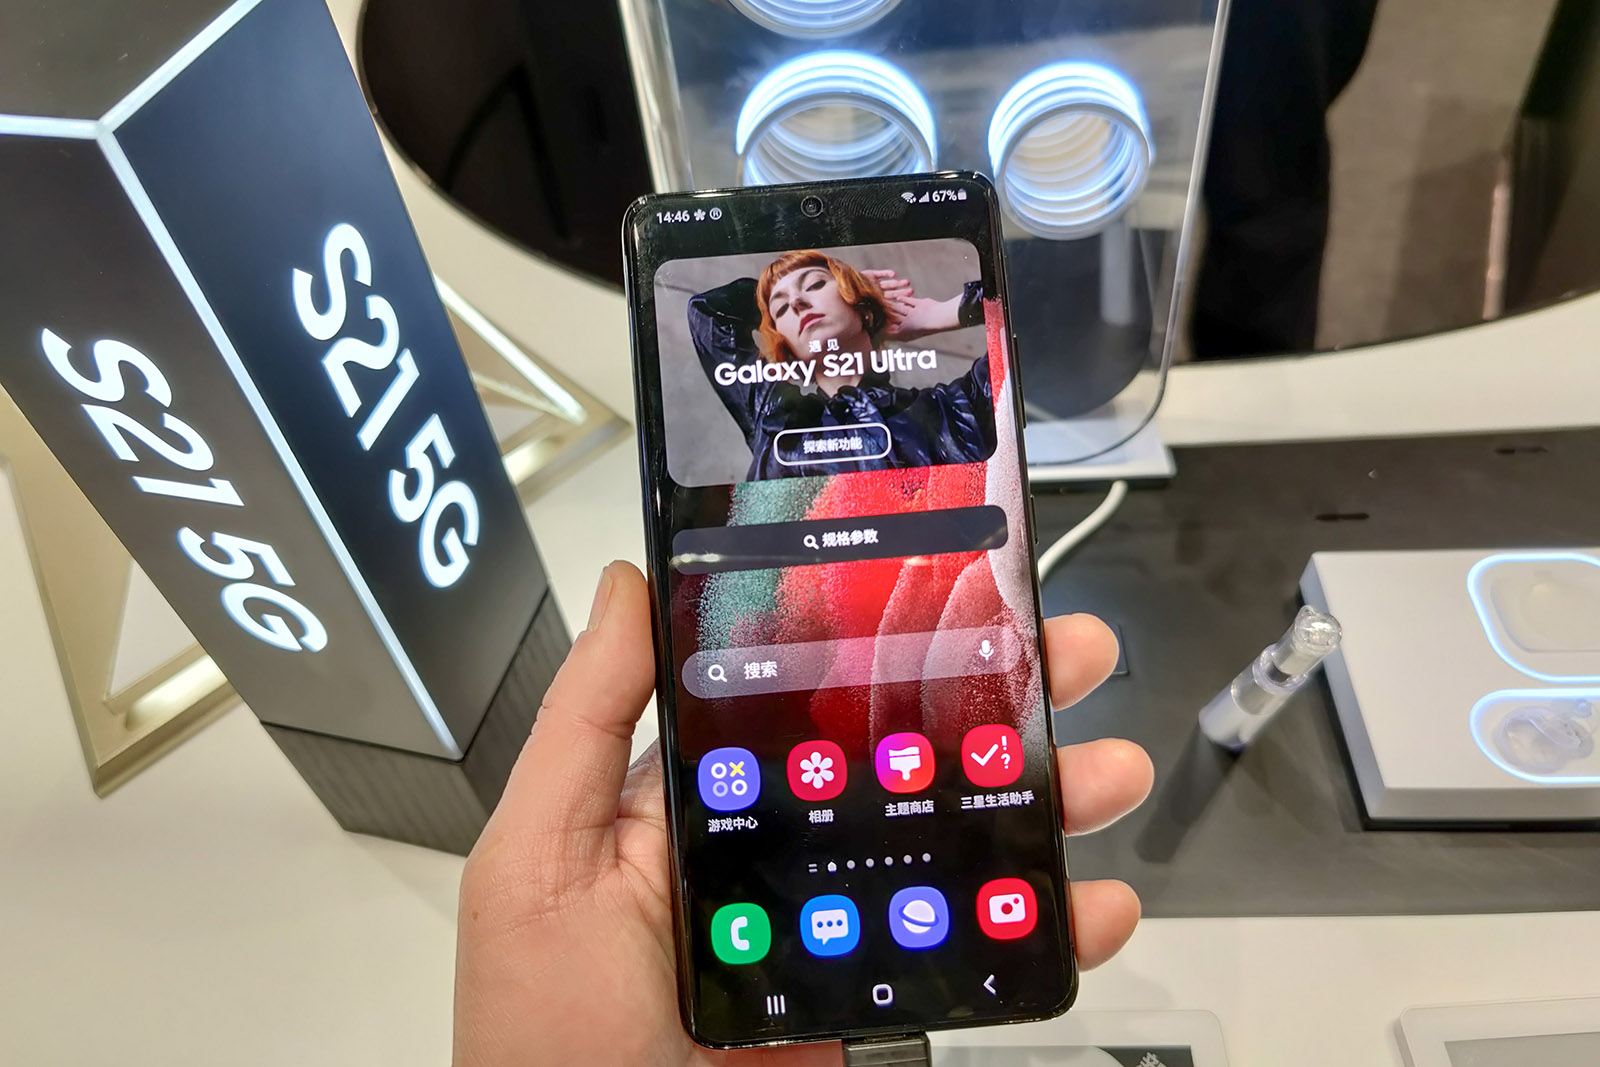 SHANGHAI, CHINA - JANUARY 25: A man shows a Samsung Galaxy S21 5G smartphone at a flagship store on January 25, 2021 in Shanghai, China. (Photo by Wang Gang/VCG via Getty Images)